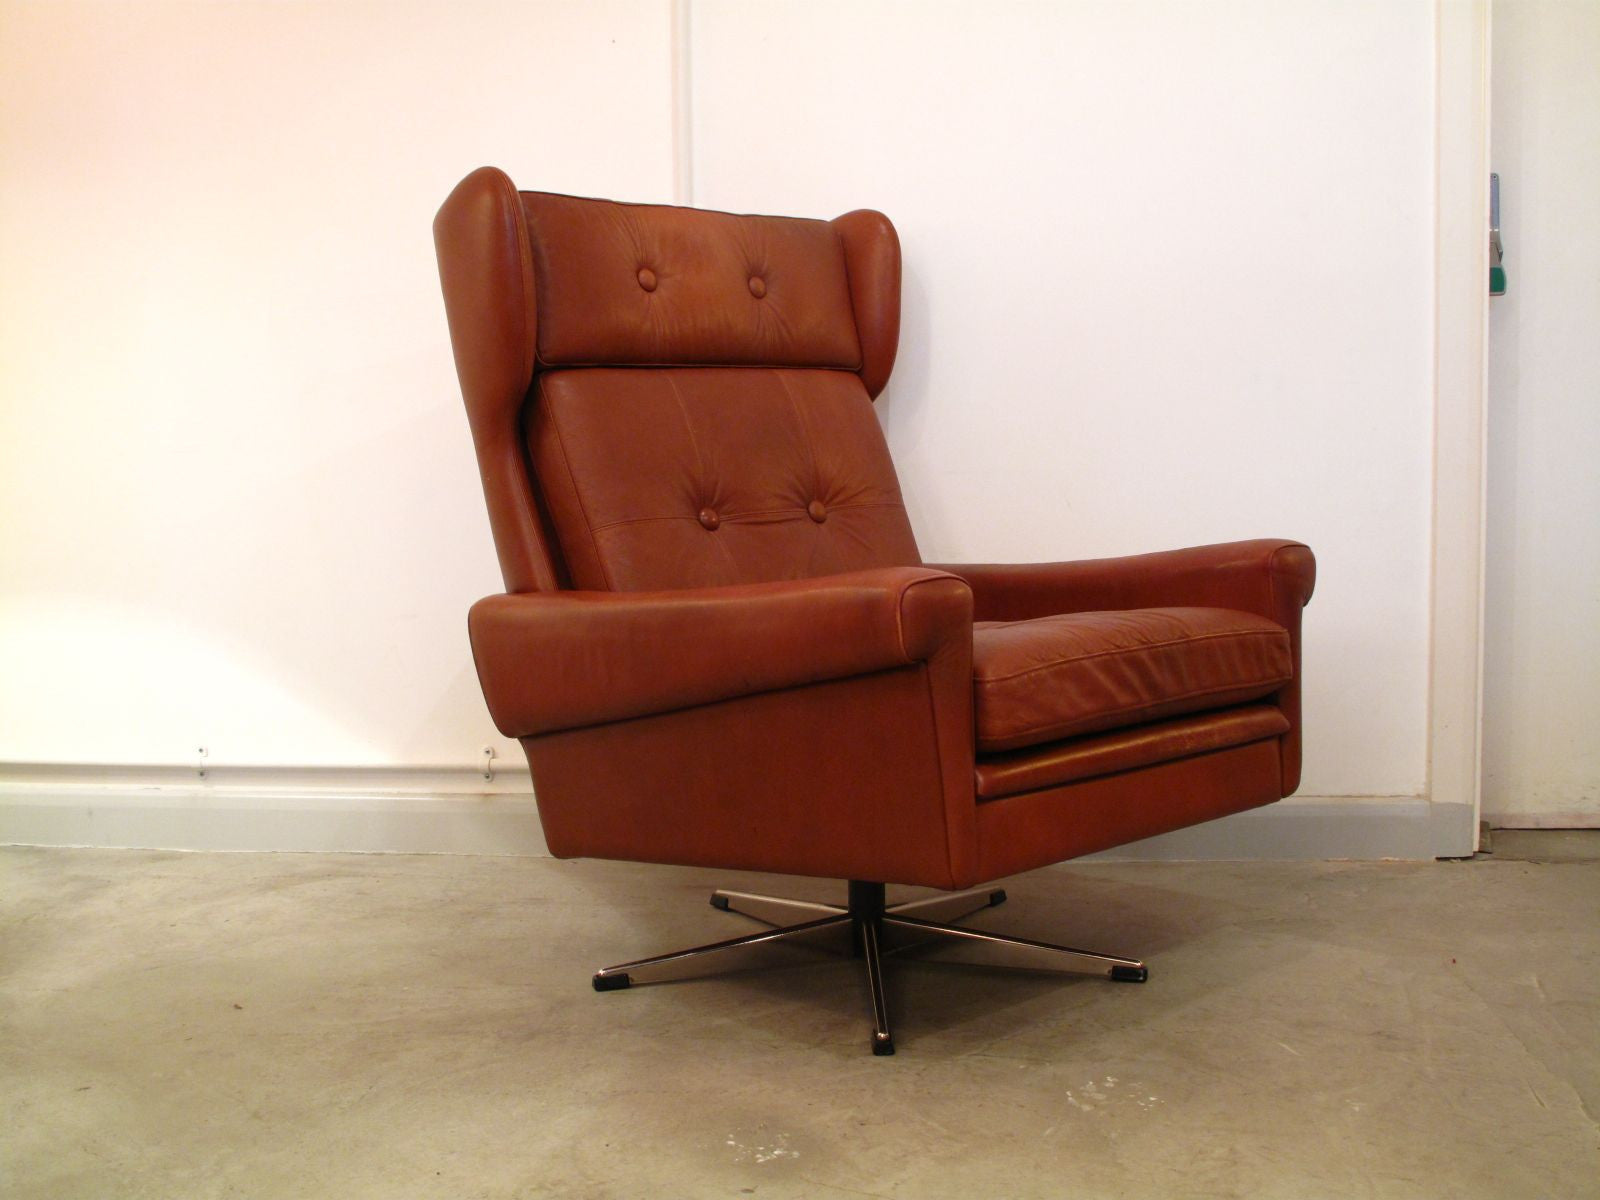 Chase & Sorensen Highback caramel-colored lounger